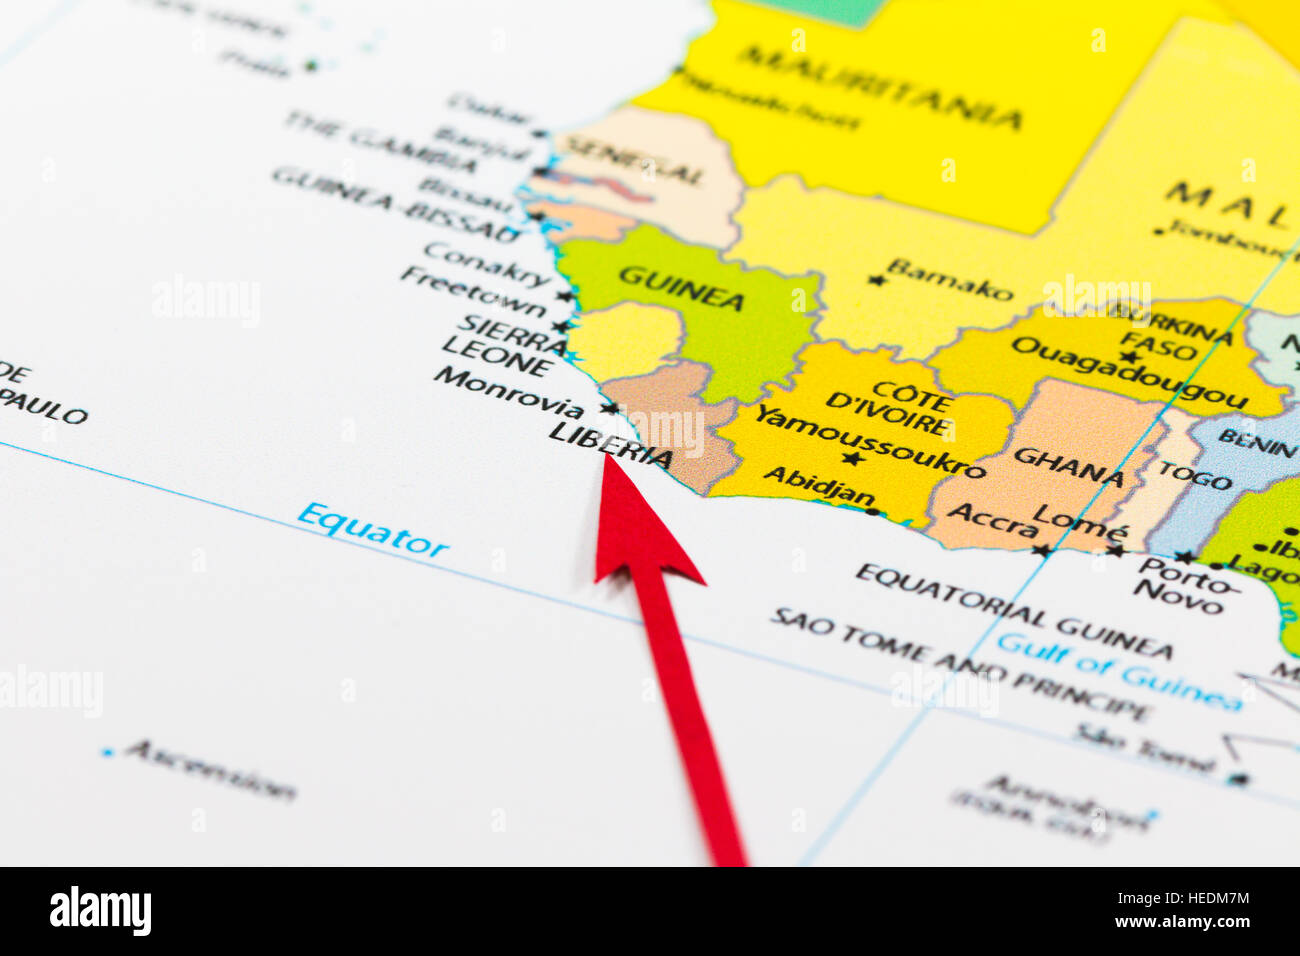 Image of: Red Arrow Pointing Liberia On The Map Of Africa Continent Stock Photo Alamy